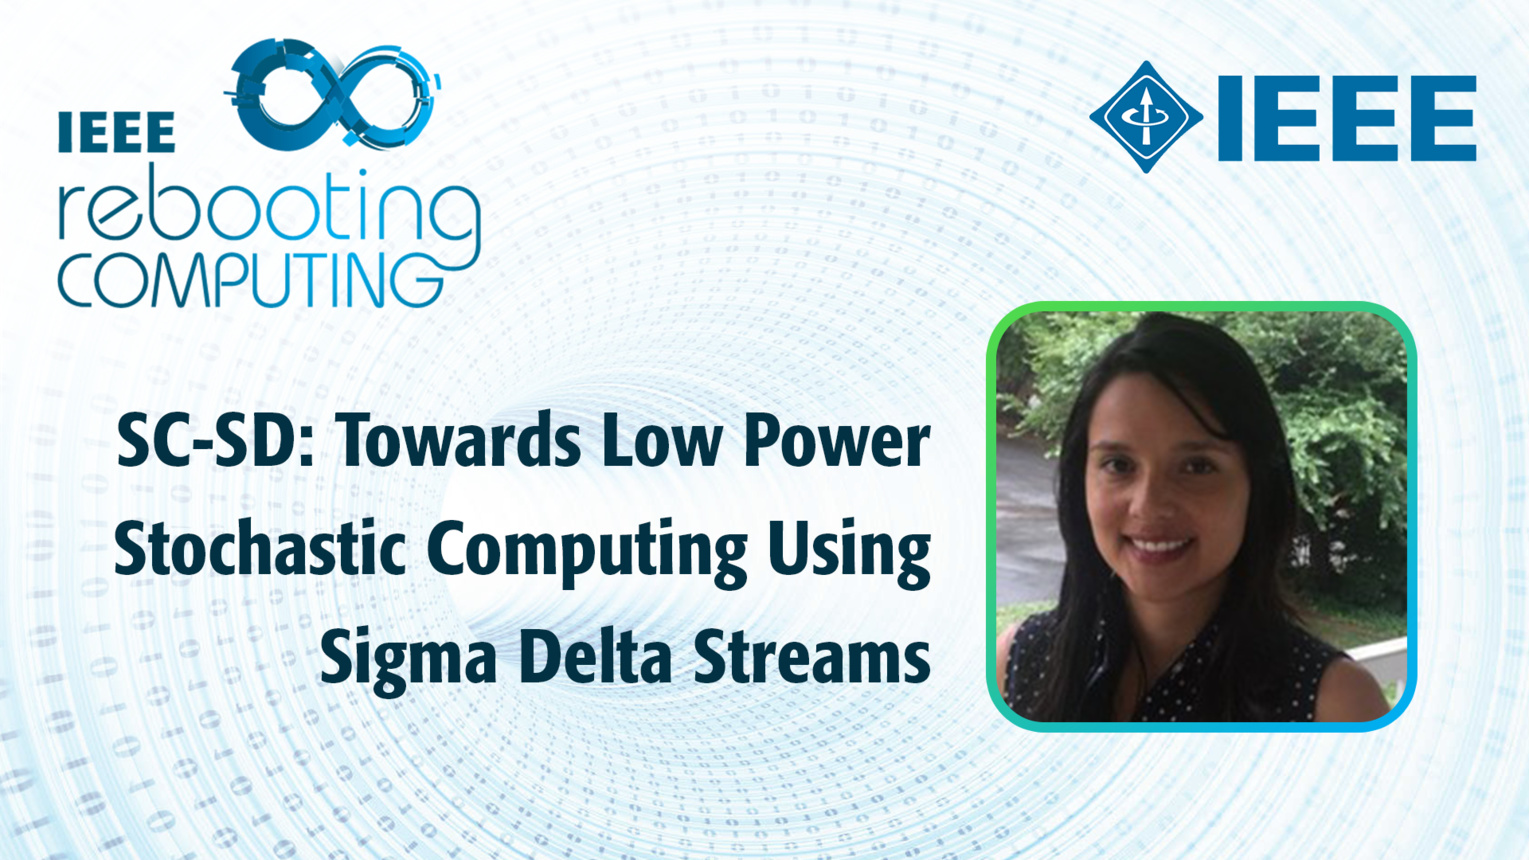 SC-SD: Towards Low Power Stochastic Computing using Sigma Delta Streams - Patricia Gonzalez-Guerrero - ICRC 2018